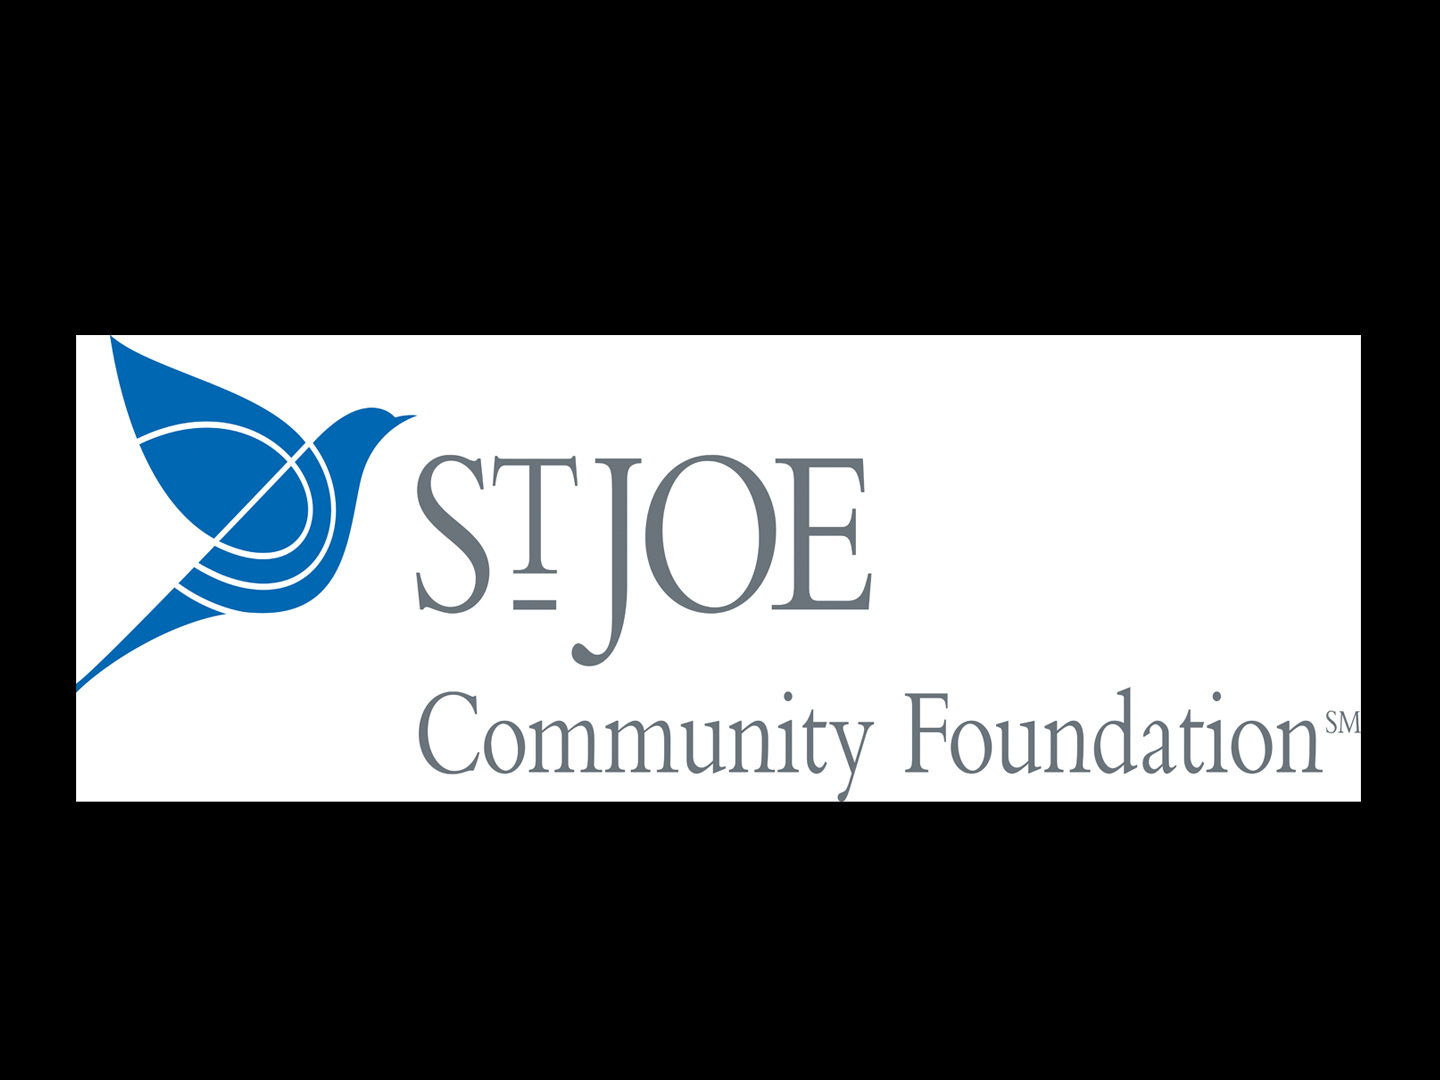 New St Joe logo_edited-1.jpg